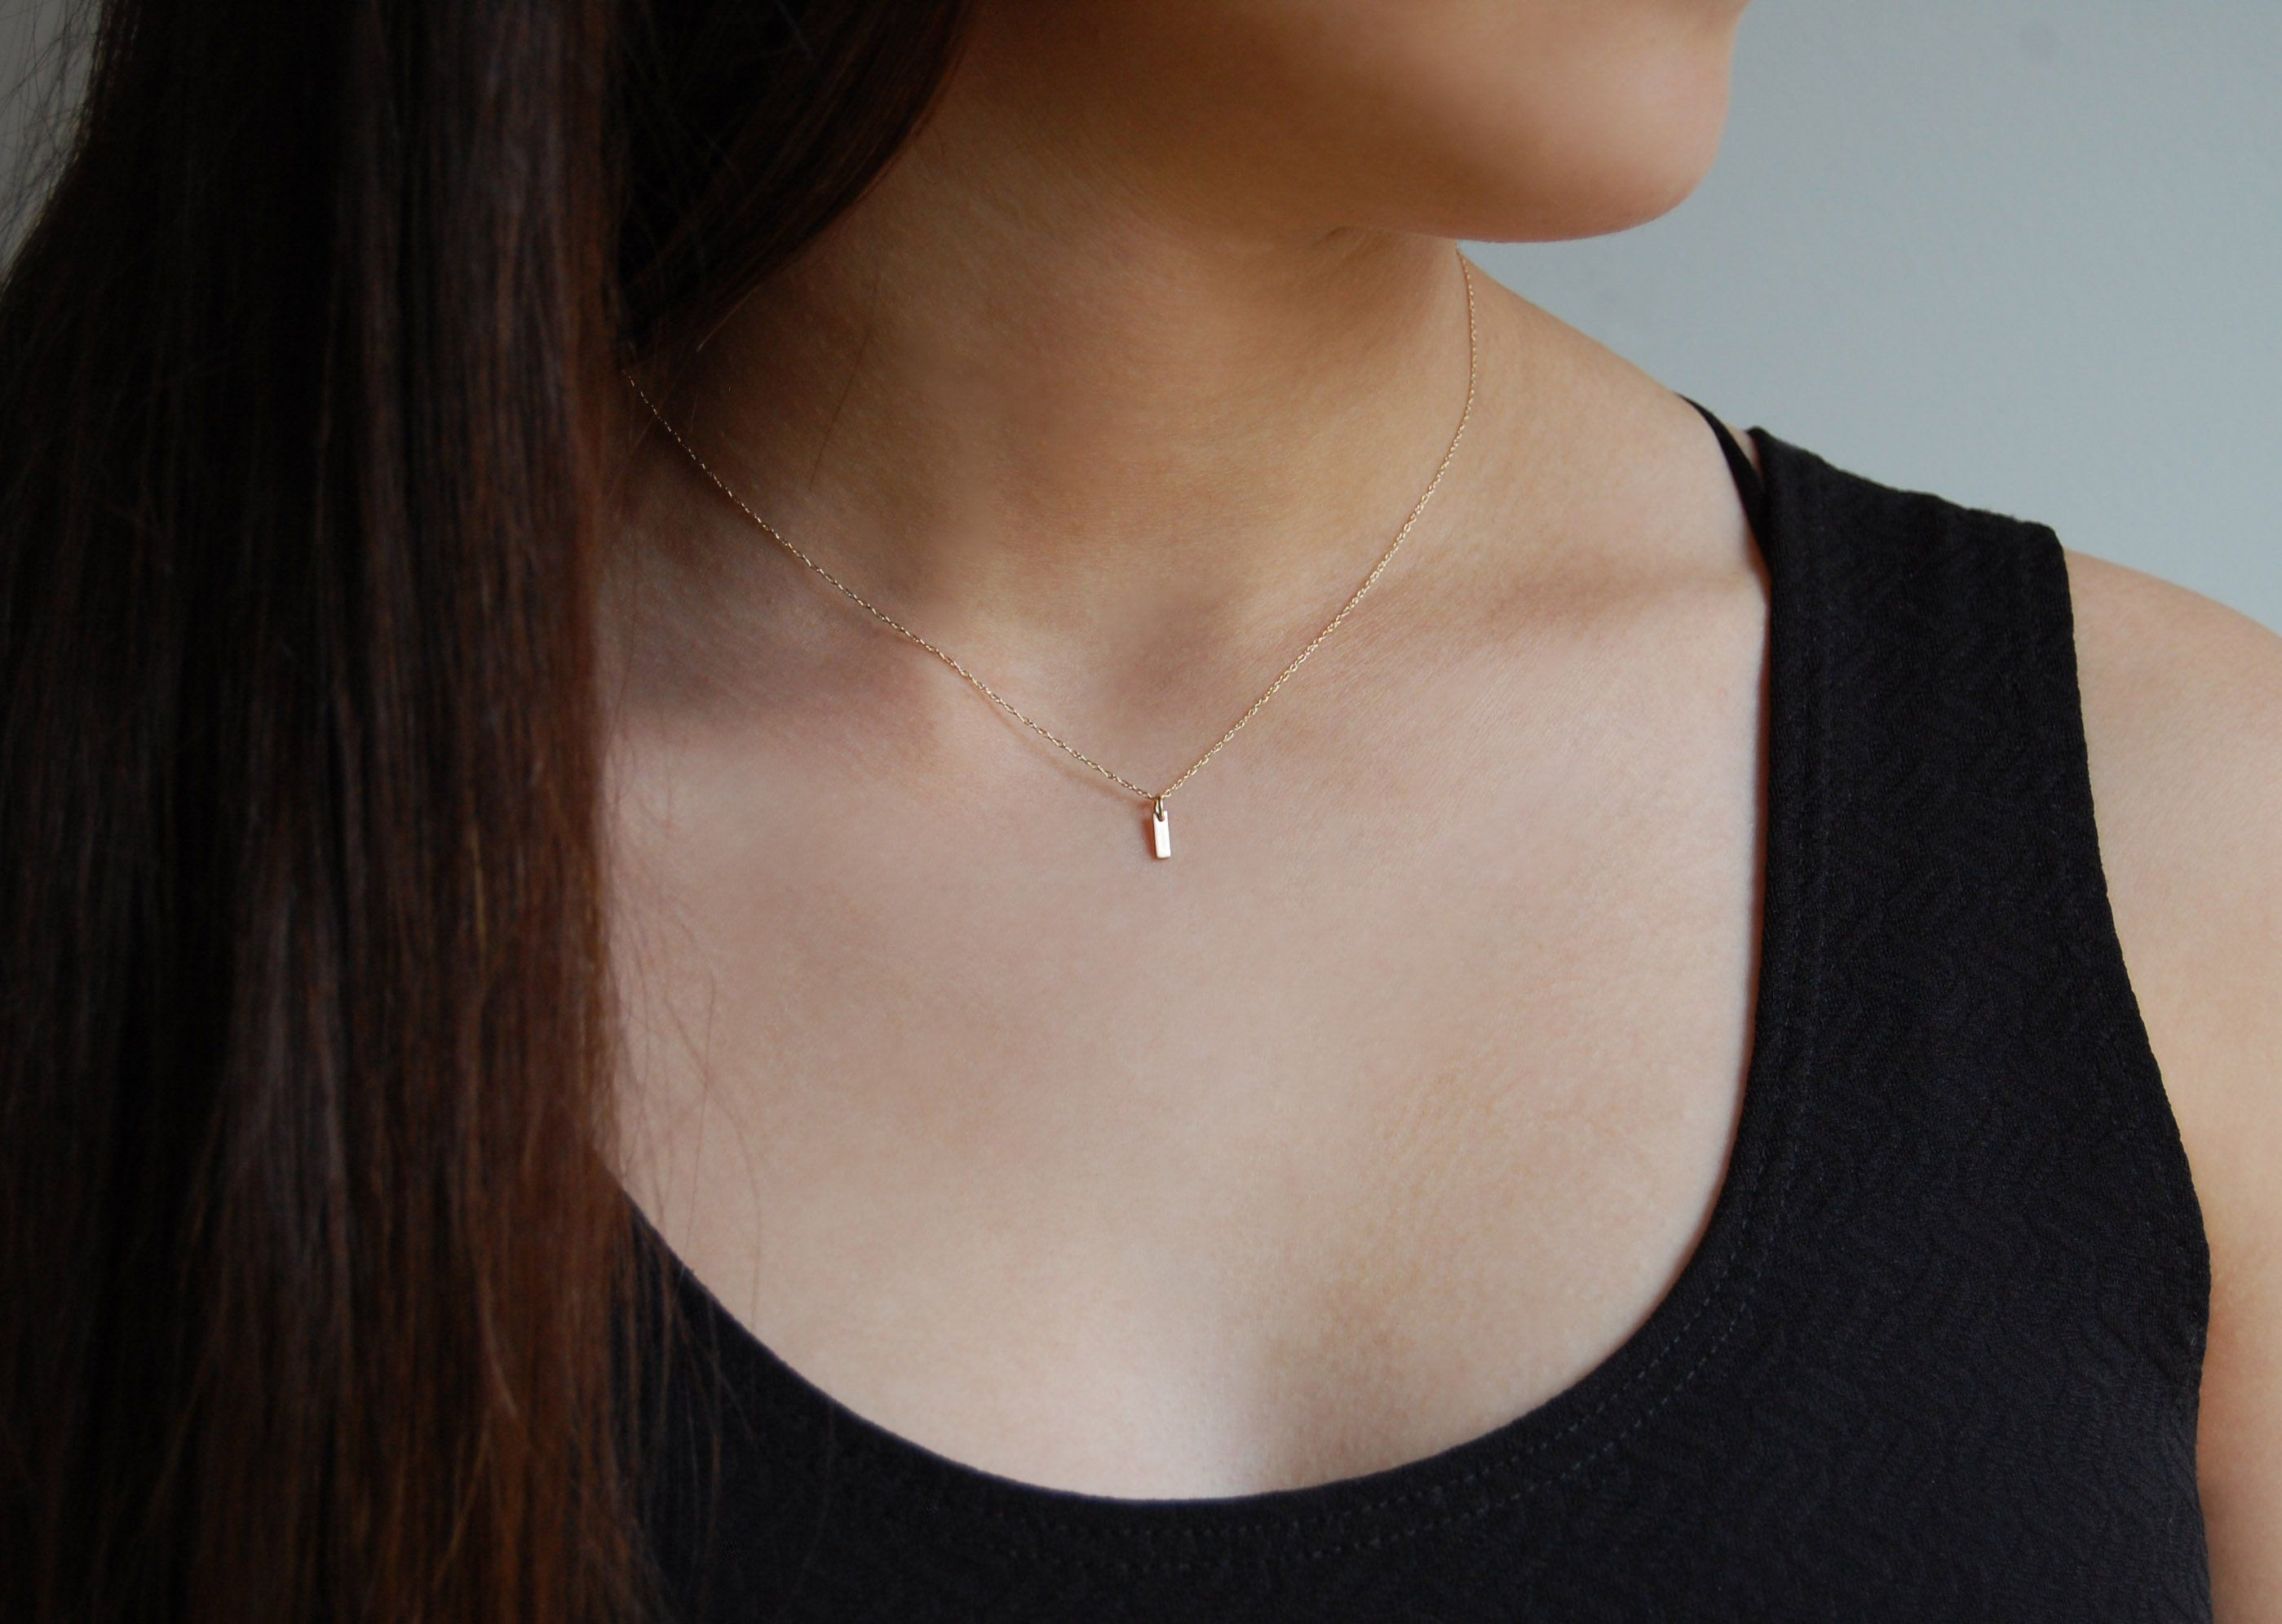 Dainty Gold Necklace 14k Yellow Gold Necklace Solid Gold Etsy Dainty Gold Necklace 14k Dainty Gold Necklace Solid Gold Necklace